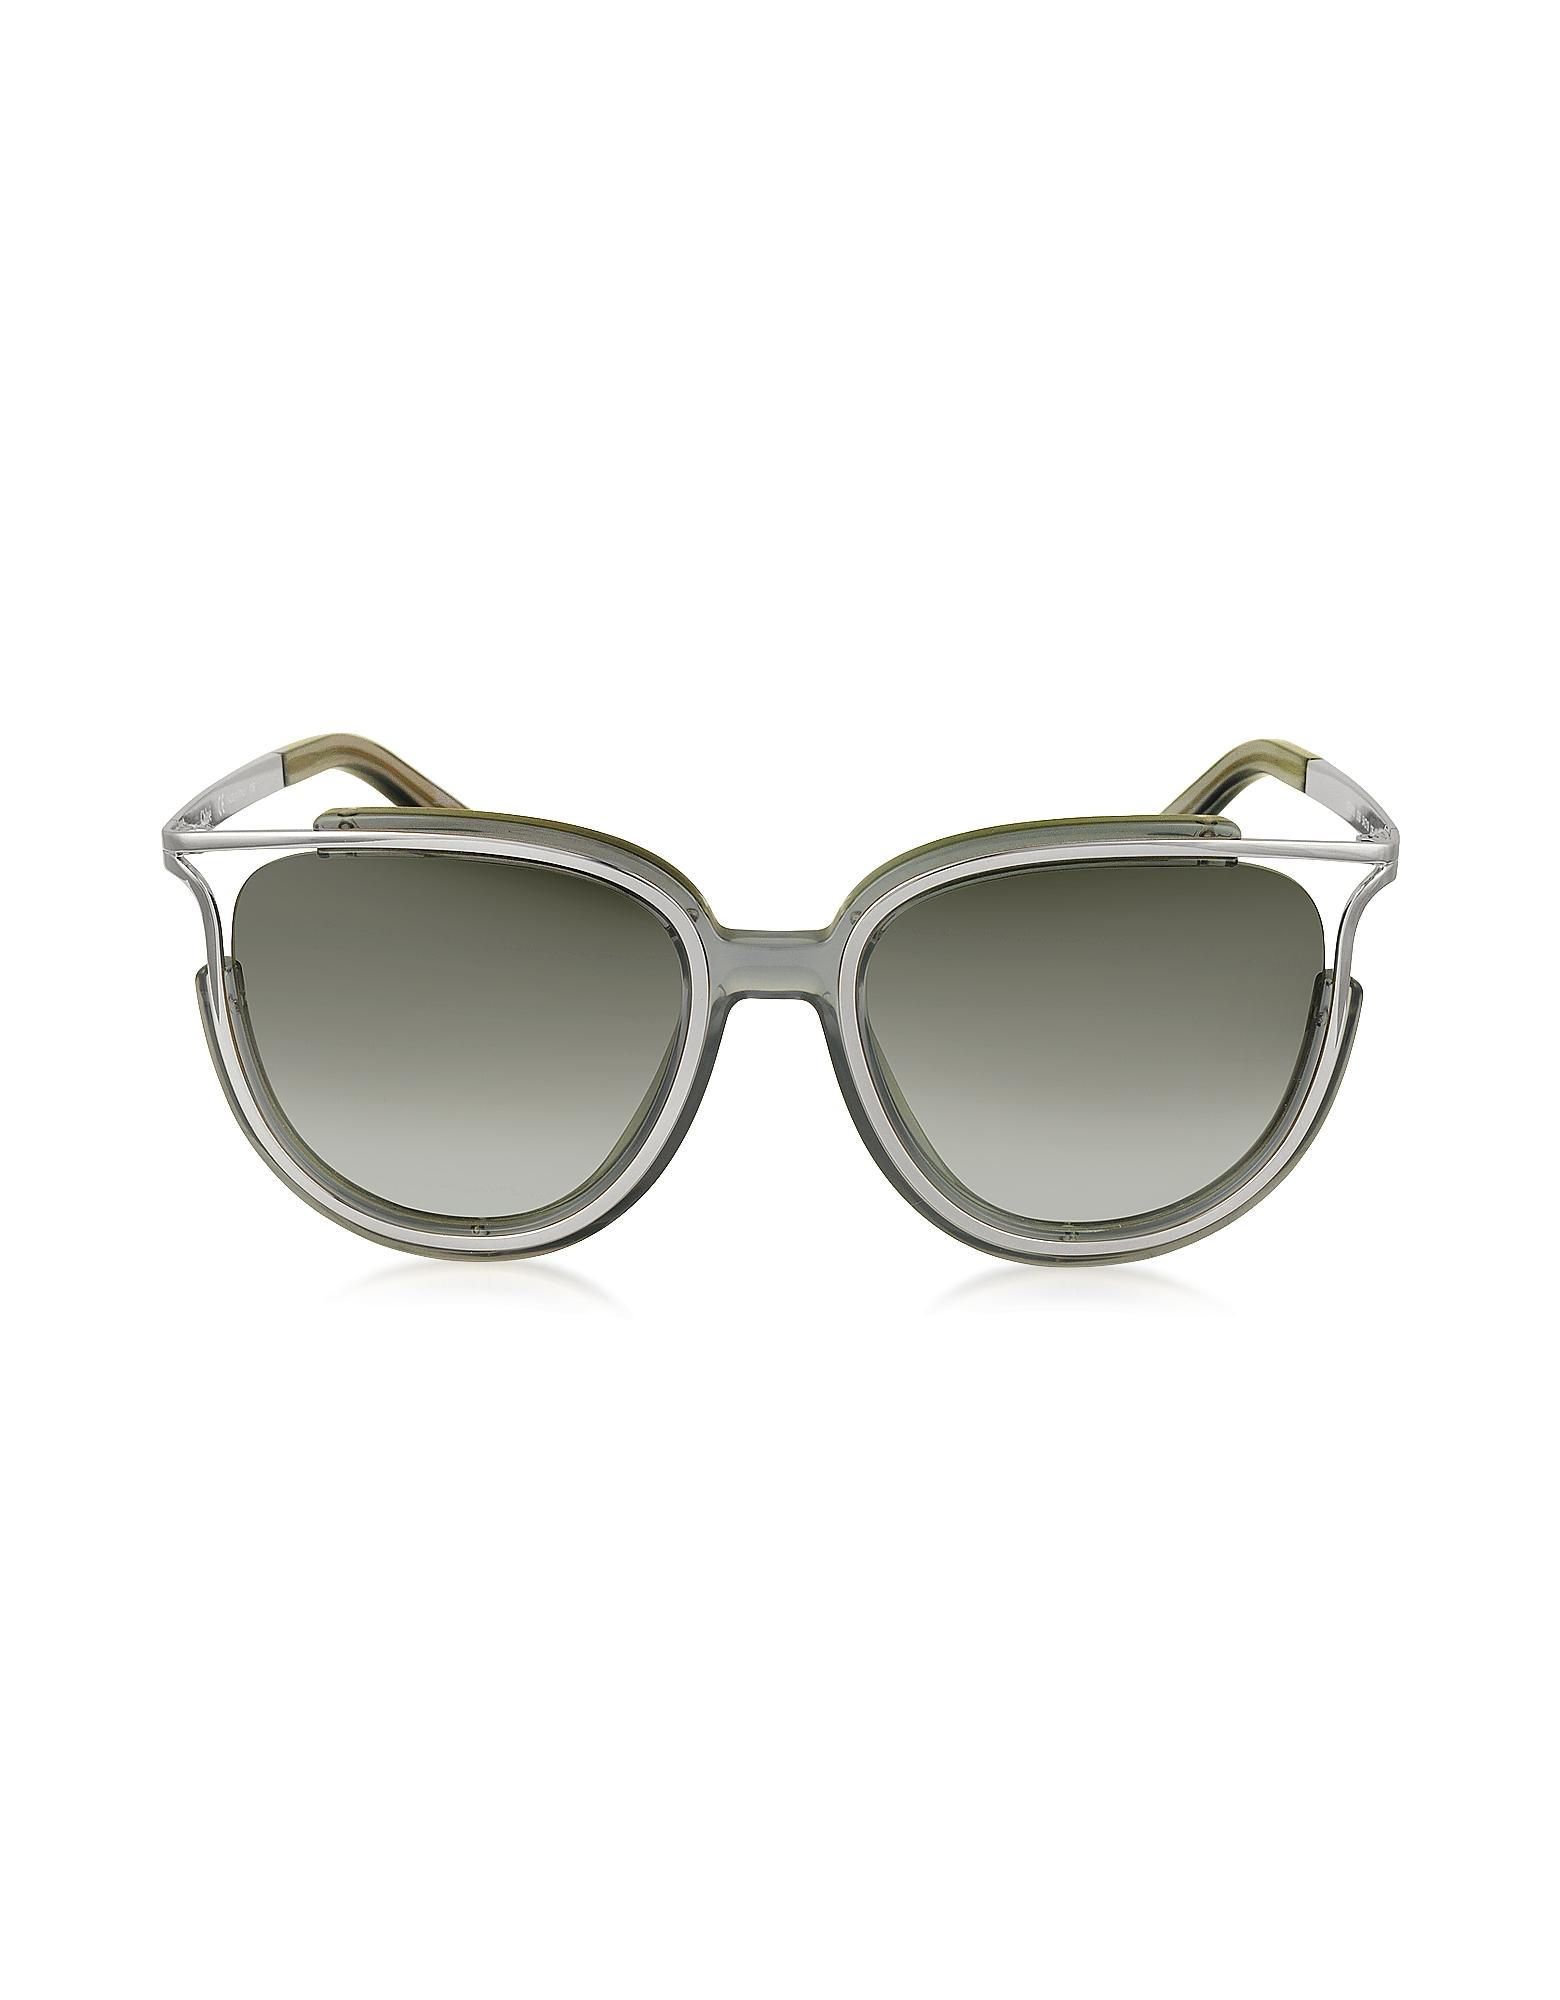 e7b35868ed1 Chloé. Jayme Ce 688s 036 Gray Acetate And Silver Metal Square Women s  Sunglasses